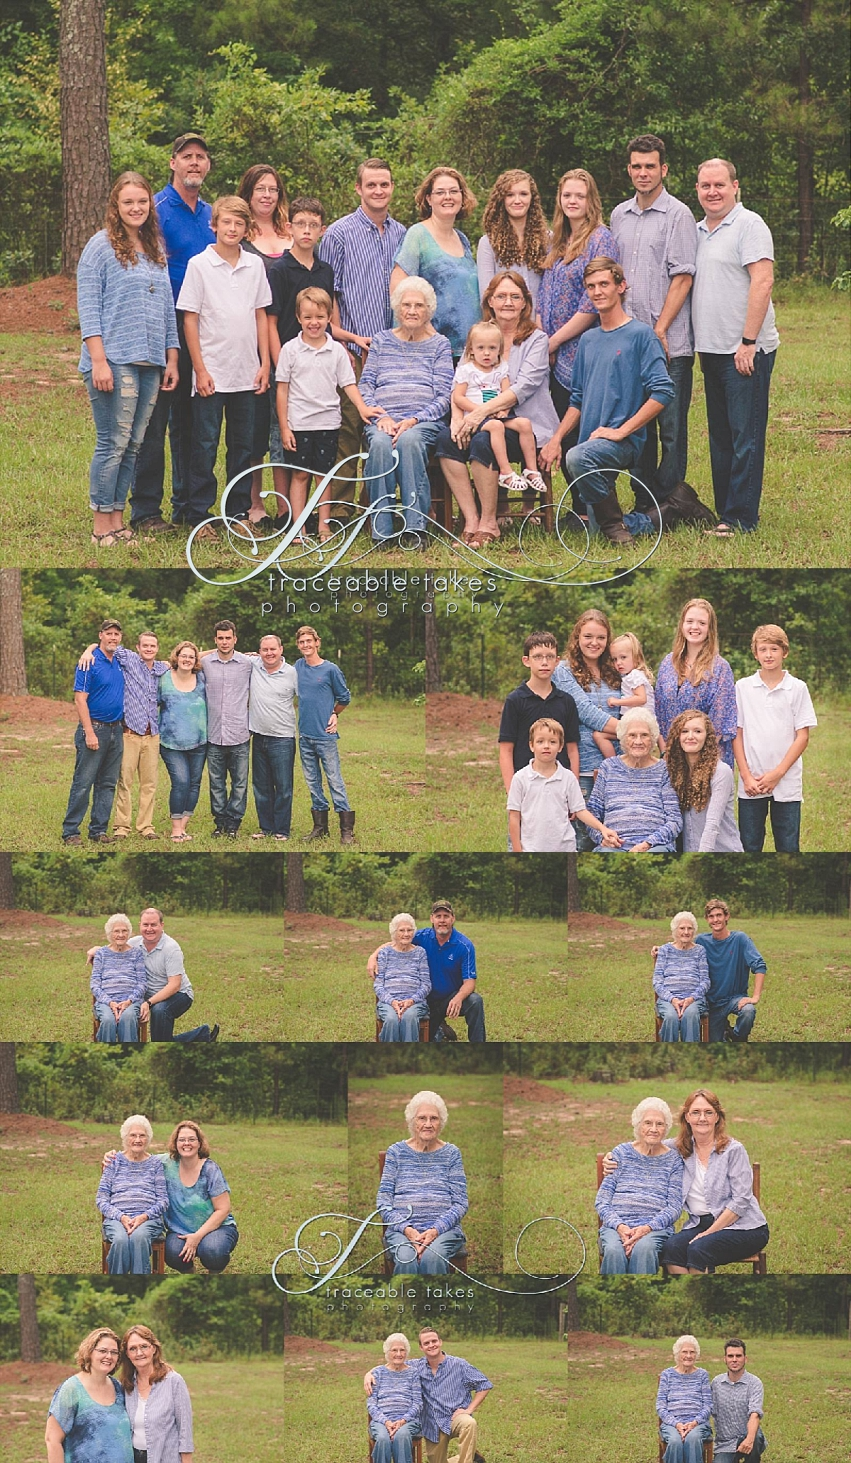 bridgets-family-photographer